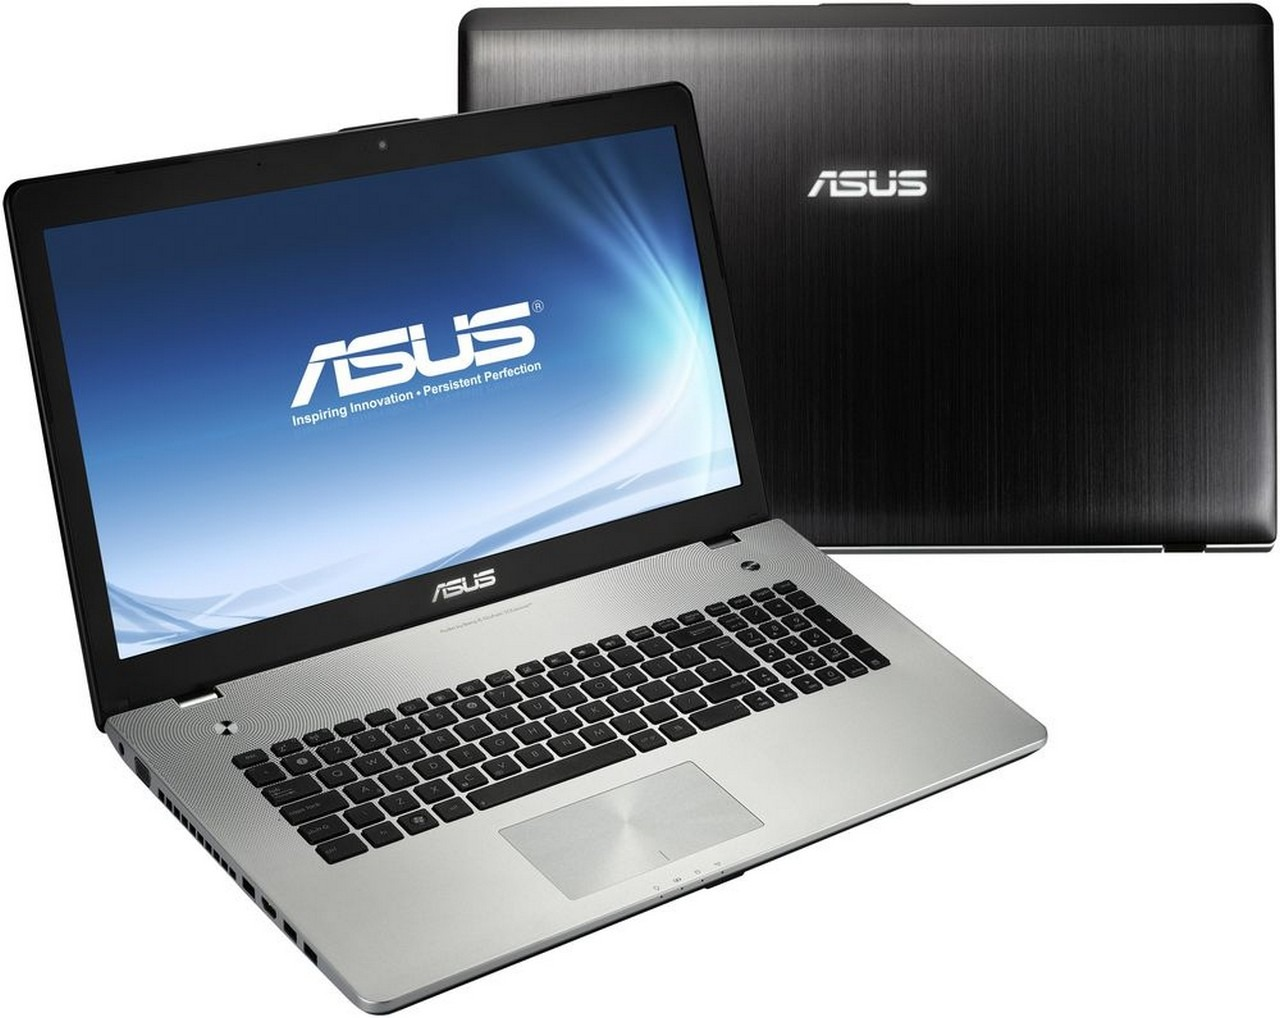 asus n76v v2g 6 de ram 1to de disque core i7 ecran de 17 3 pouces ebay. Black Bedroom Furniture Sets. Home Design Ideas